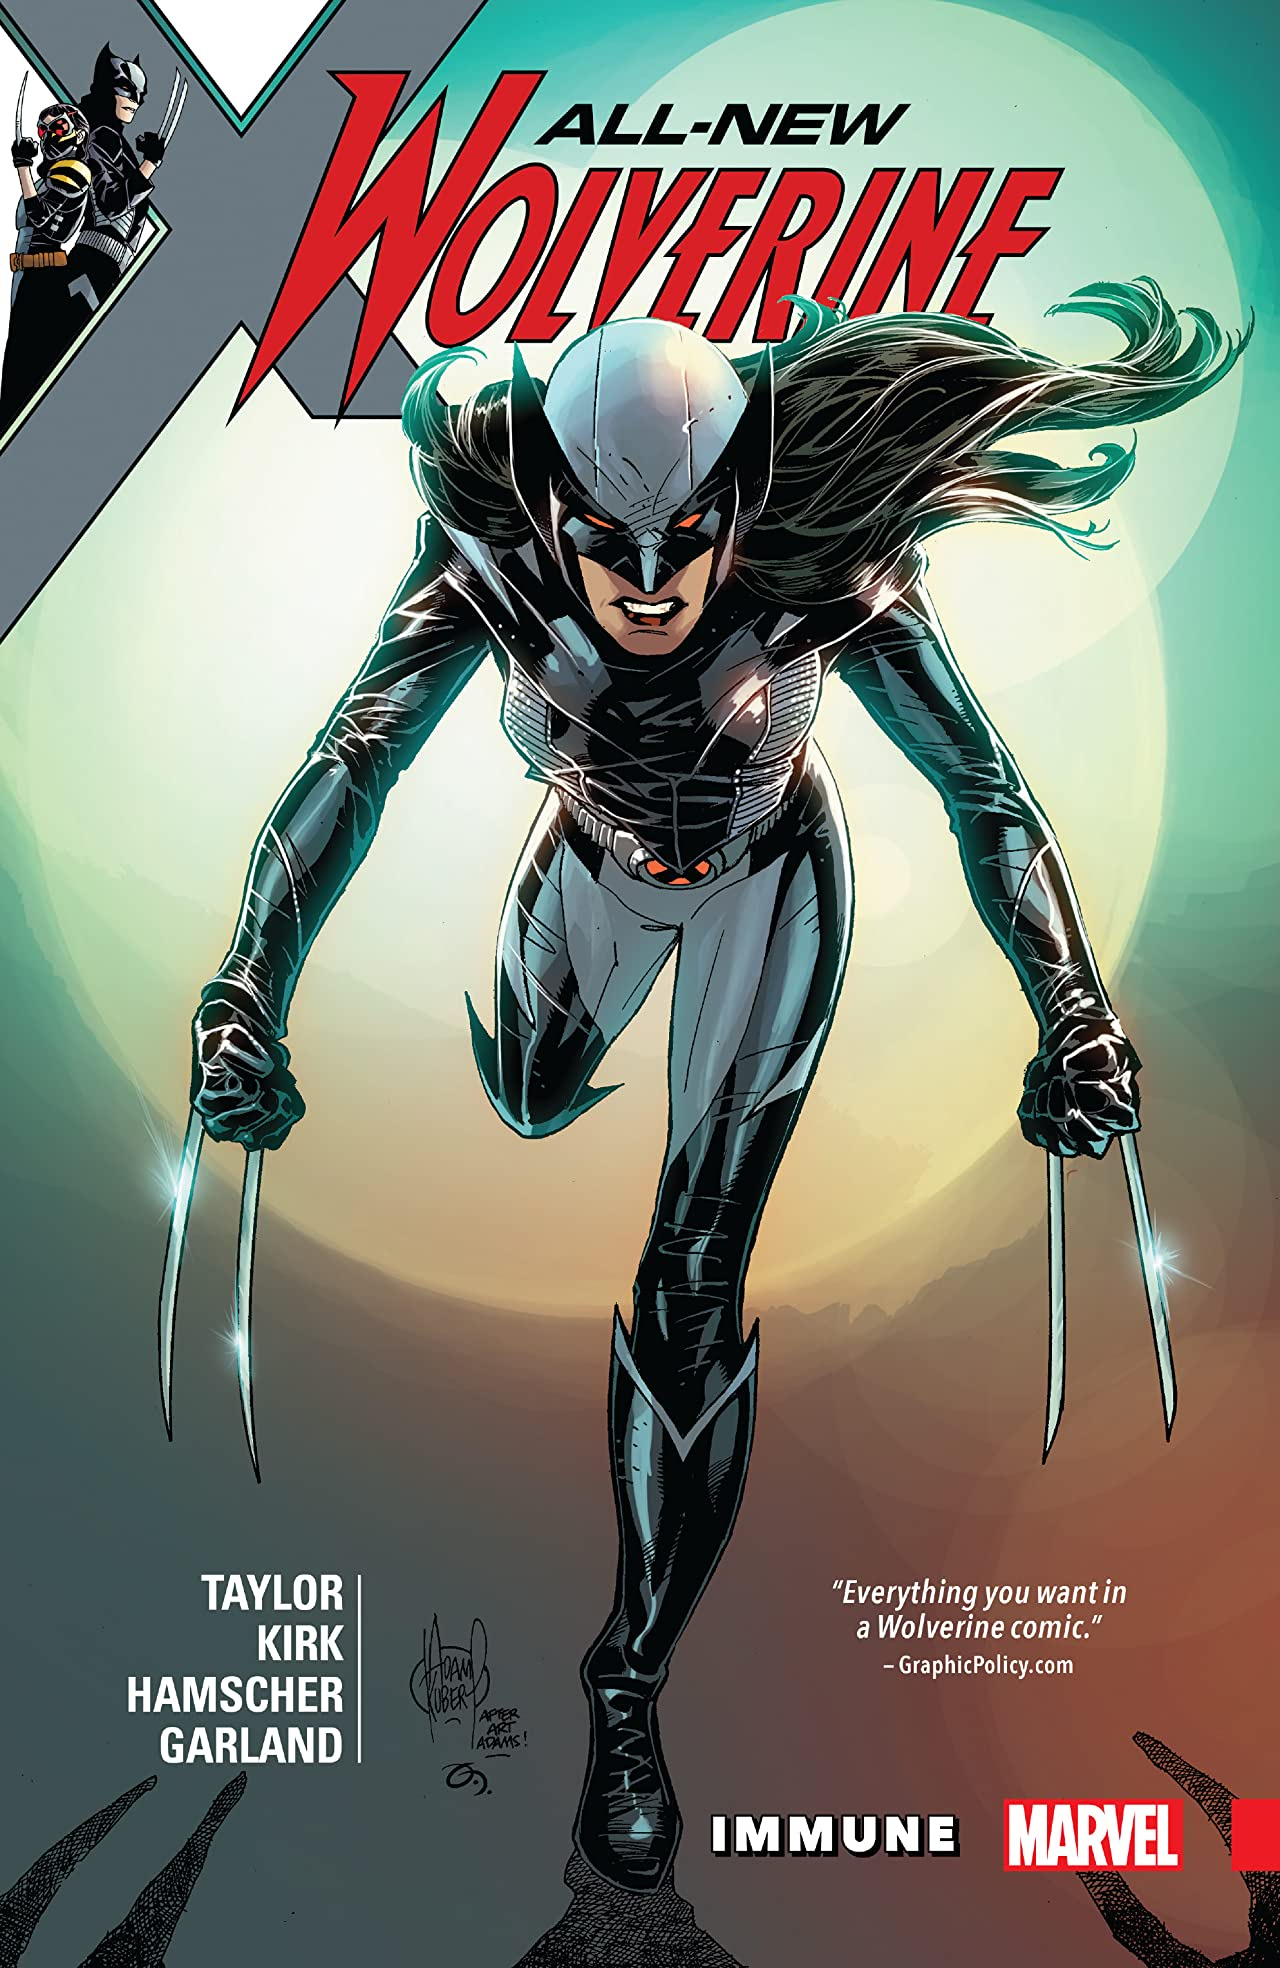 All-New Wolverine Vol. 4: Immune